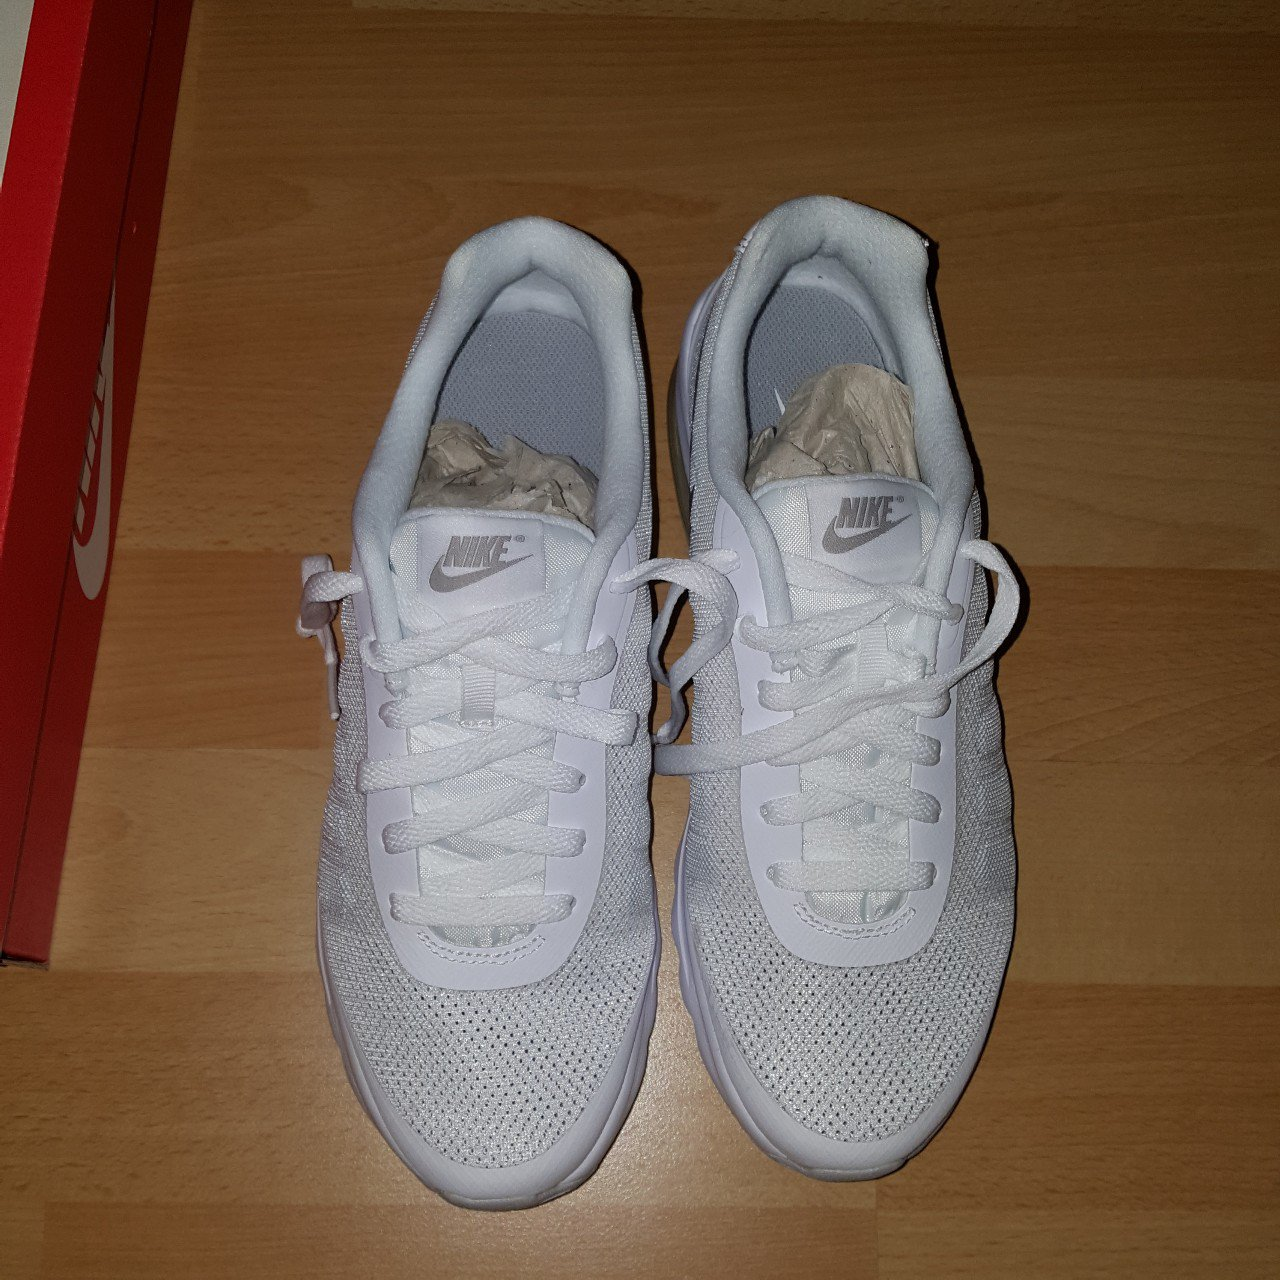 b2c117378 Nike Air Max They were a present and i am not a huge fan of - Depop